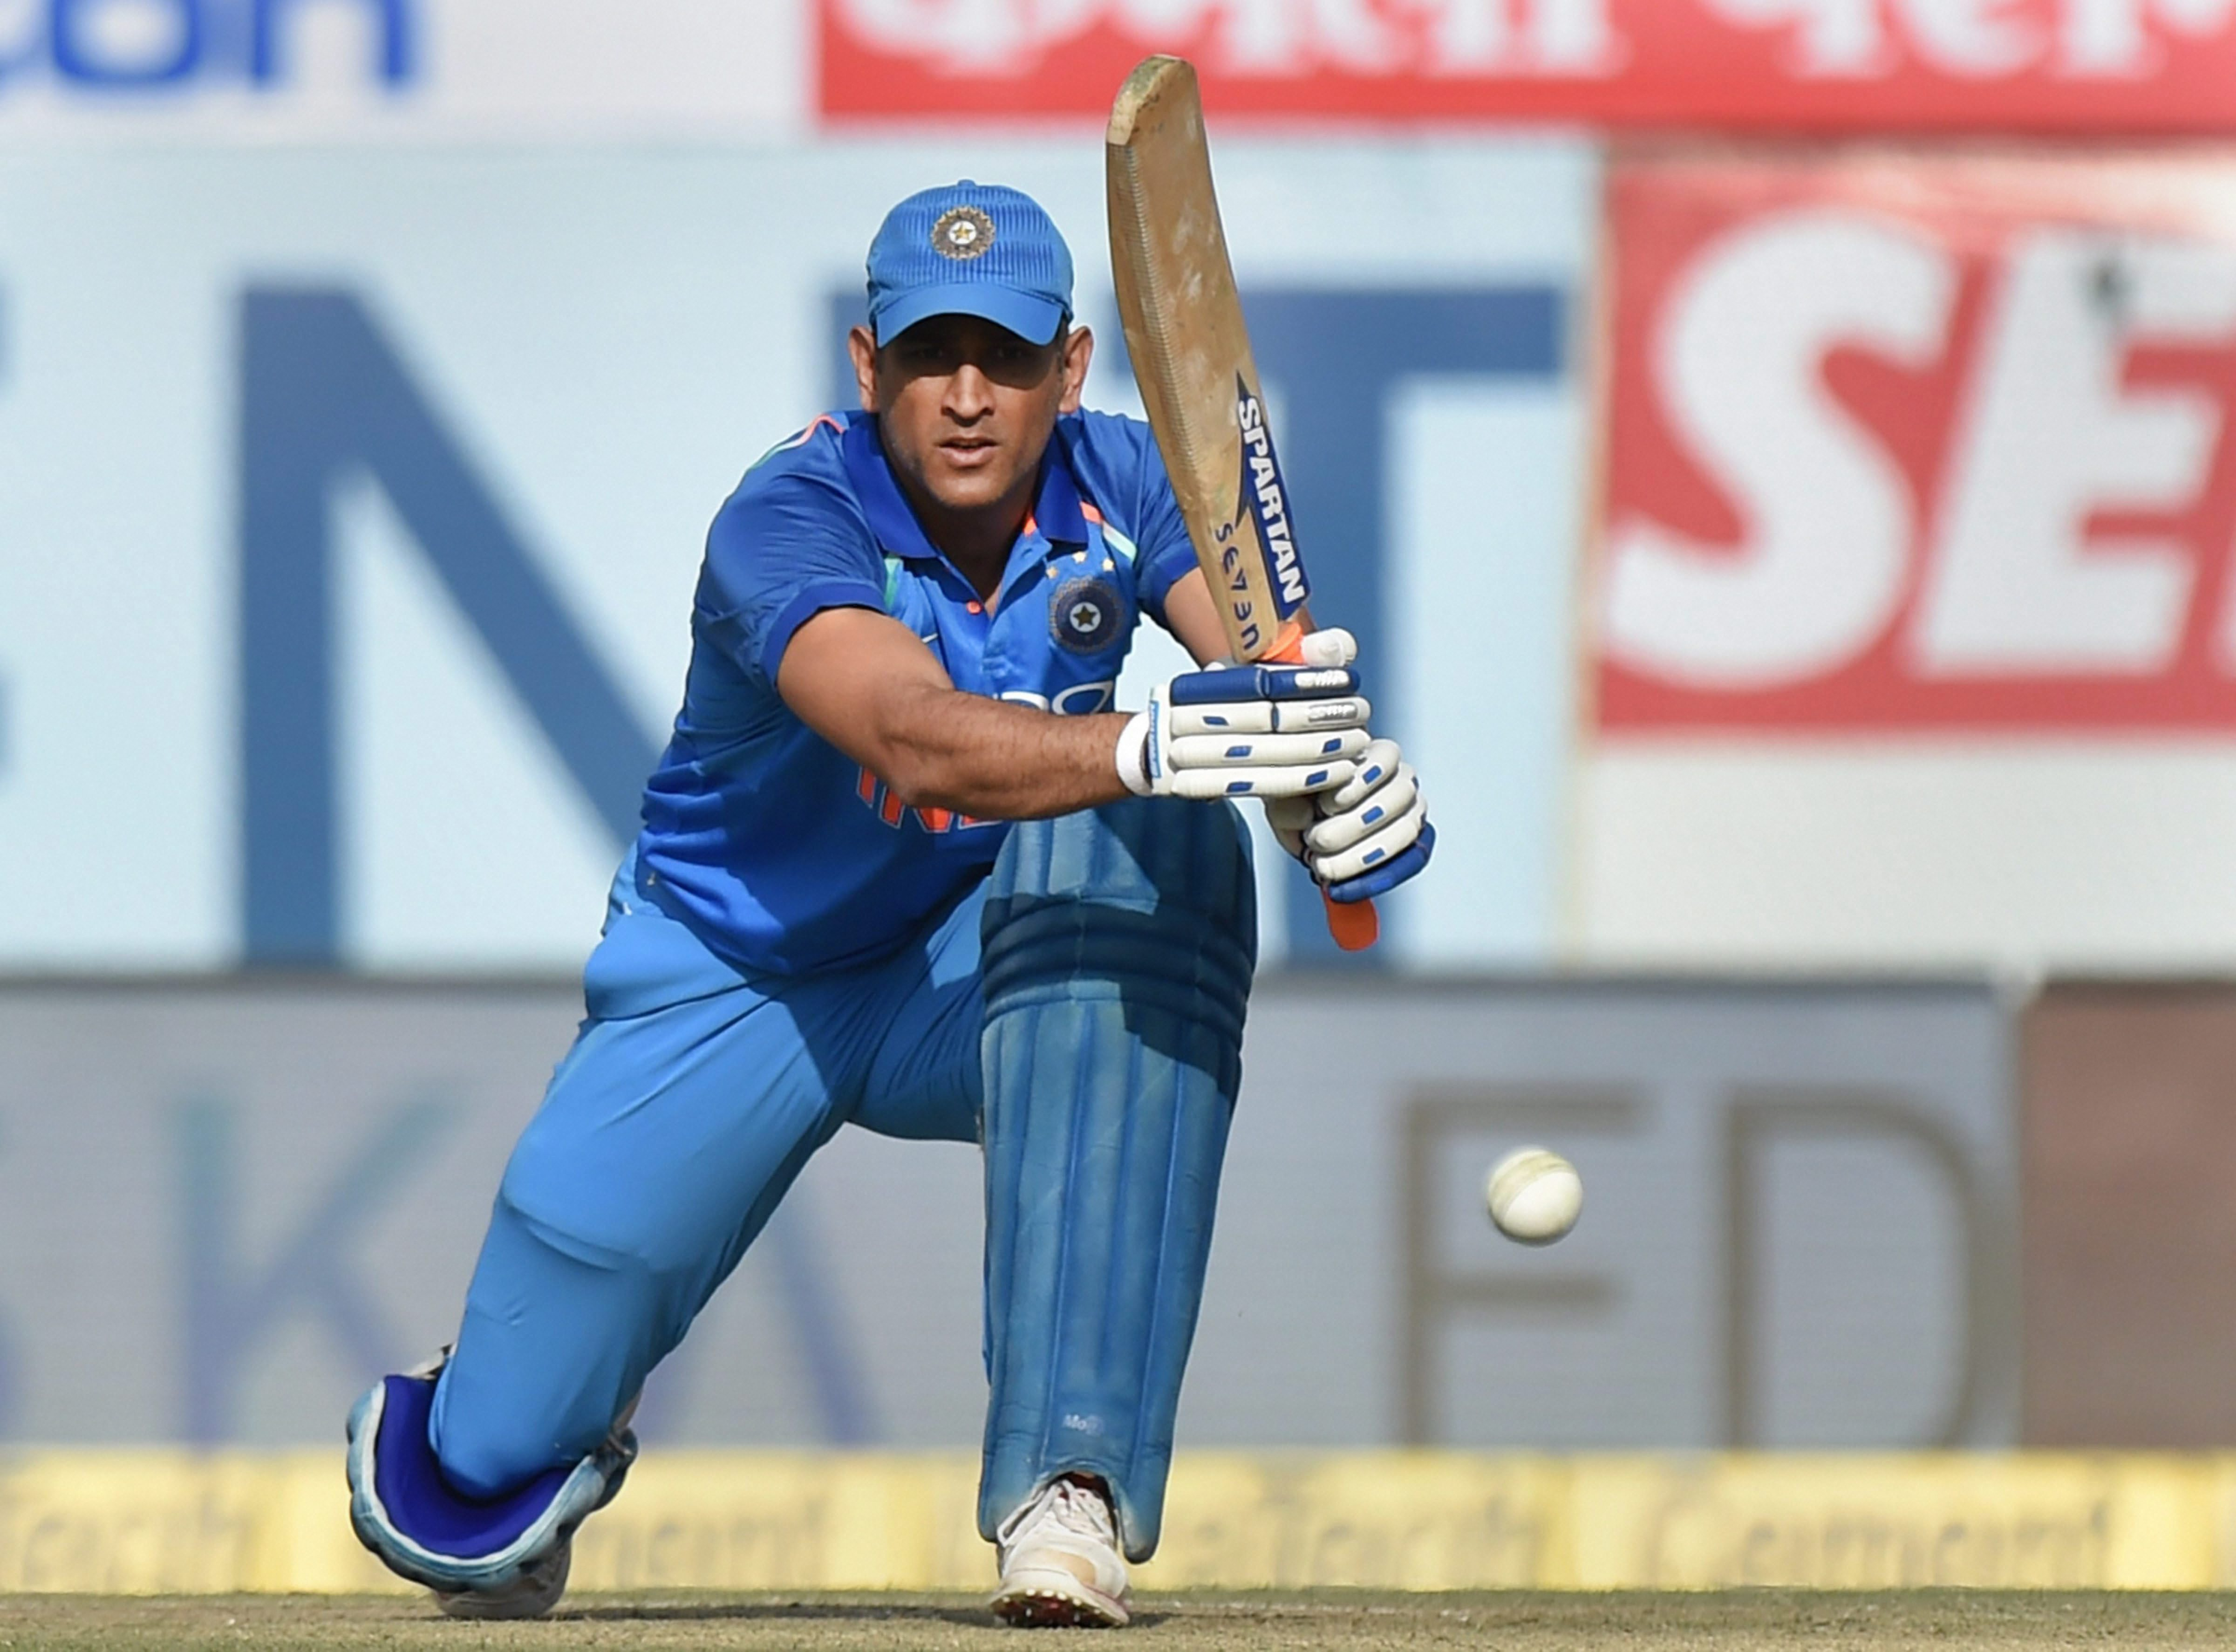 Indian cricket star MS Dhoni will be in Singapore on January 20 to launch his new cricket academy.